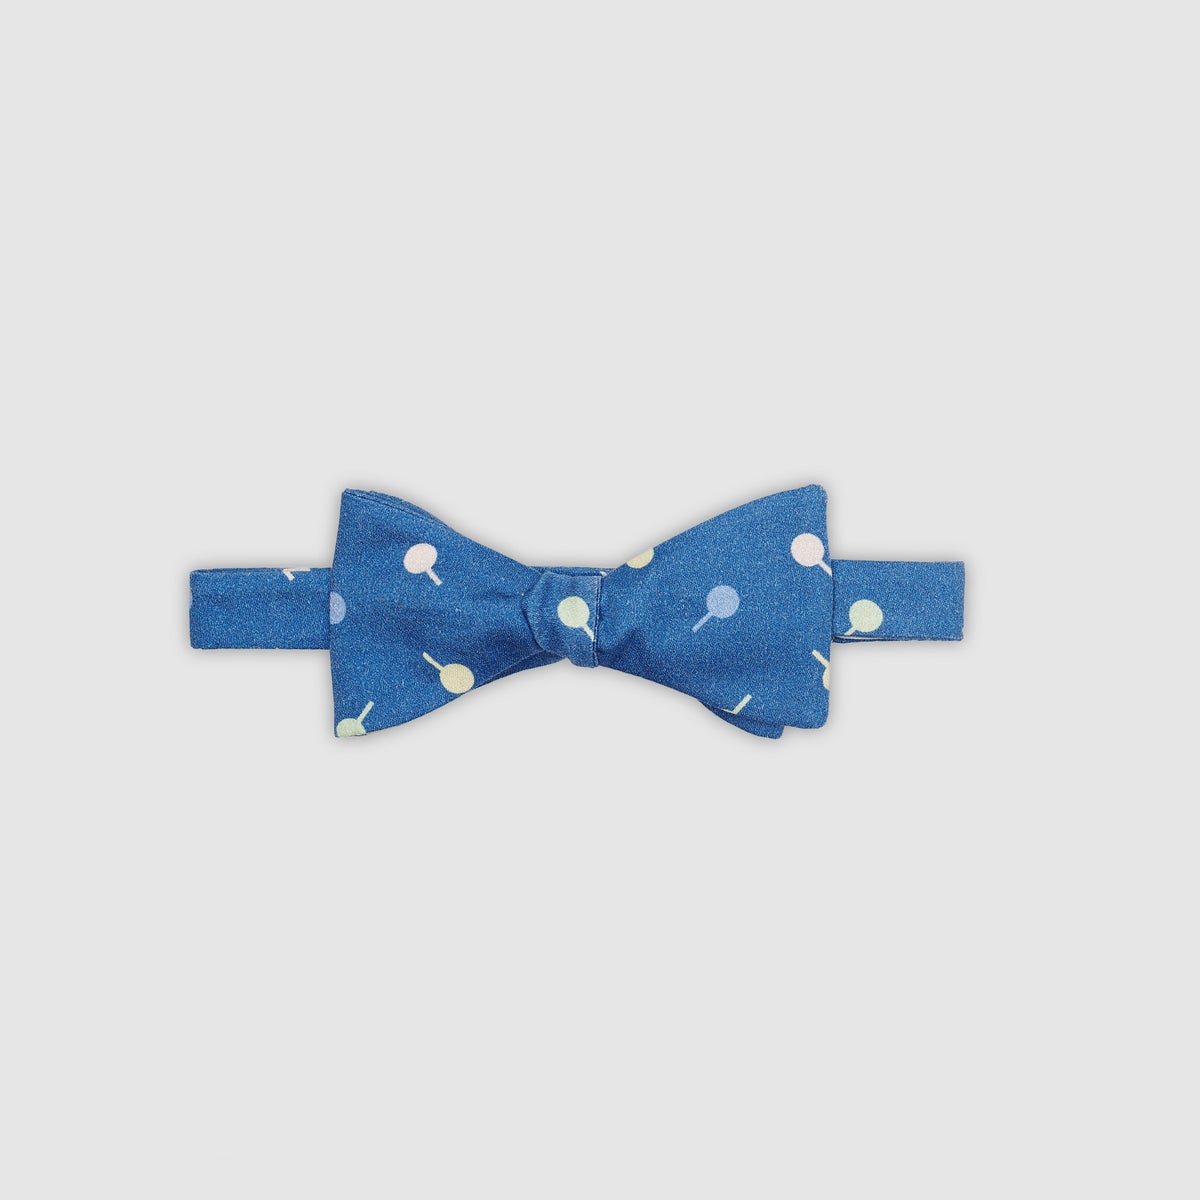 Image of GENUA - the bow tie